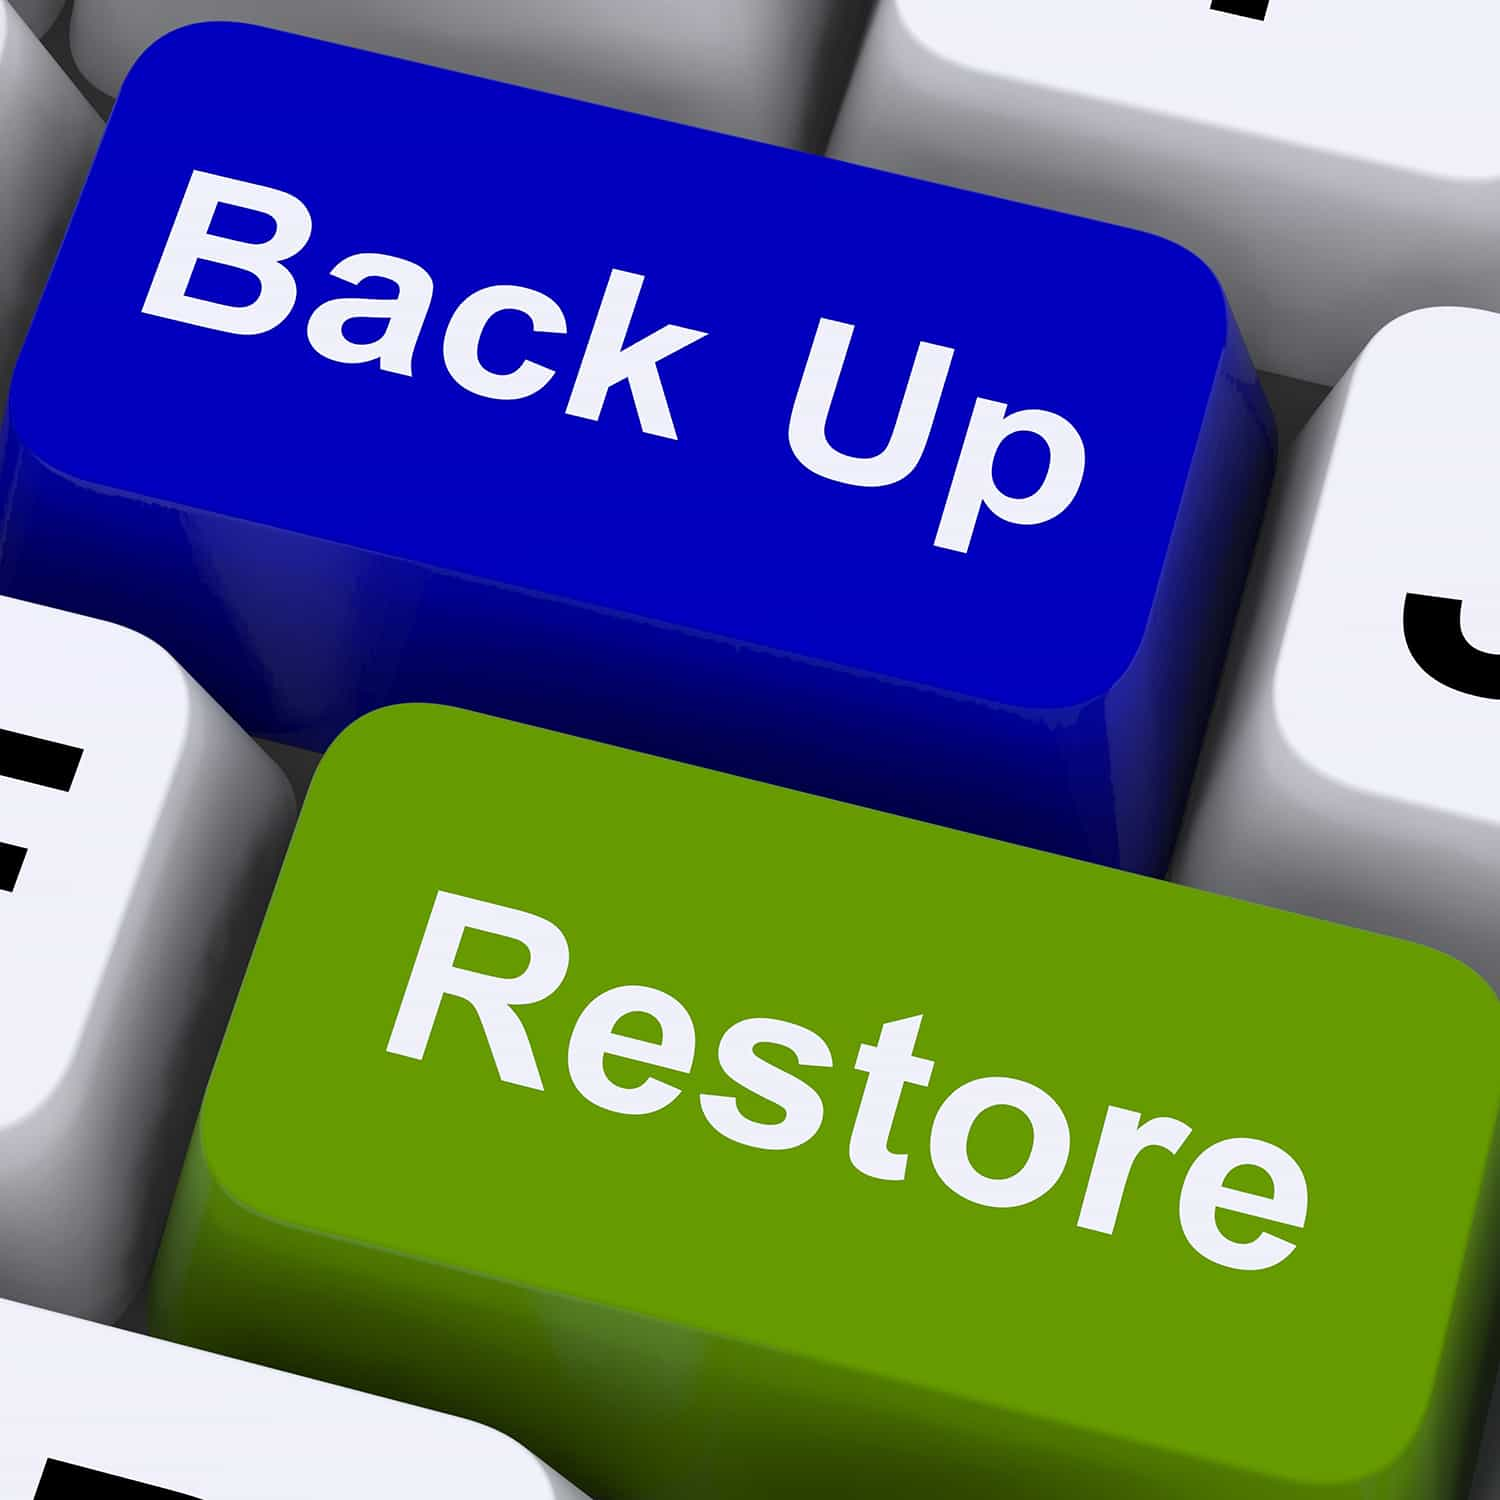 Backup, Backup & Restore, Back up, Data Backup, Cloud Backup